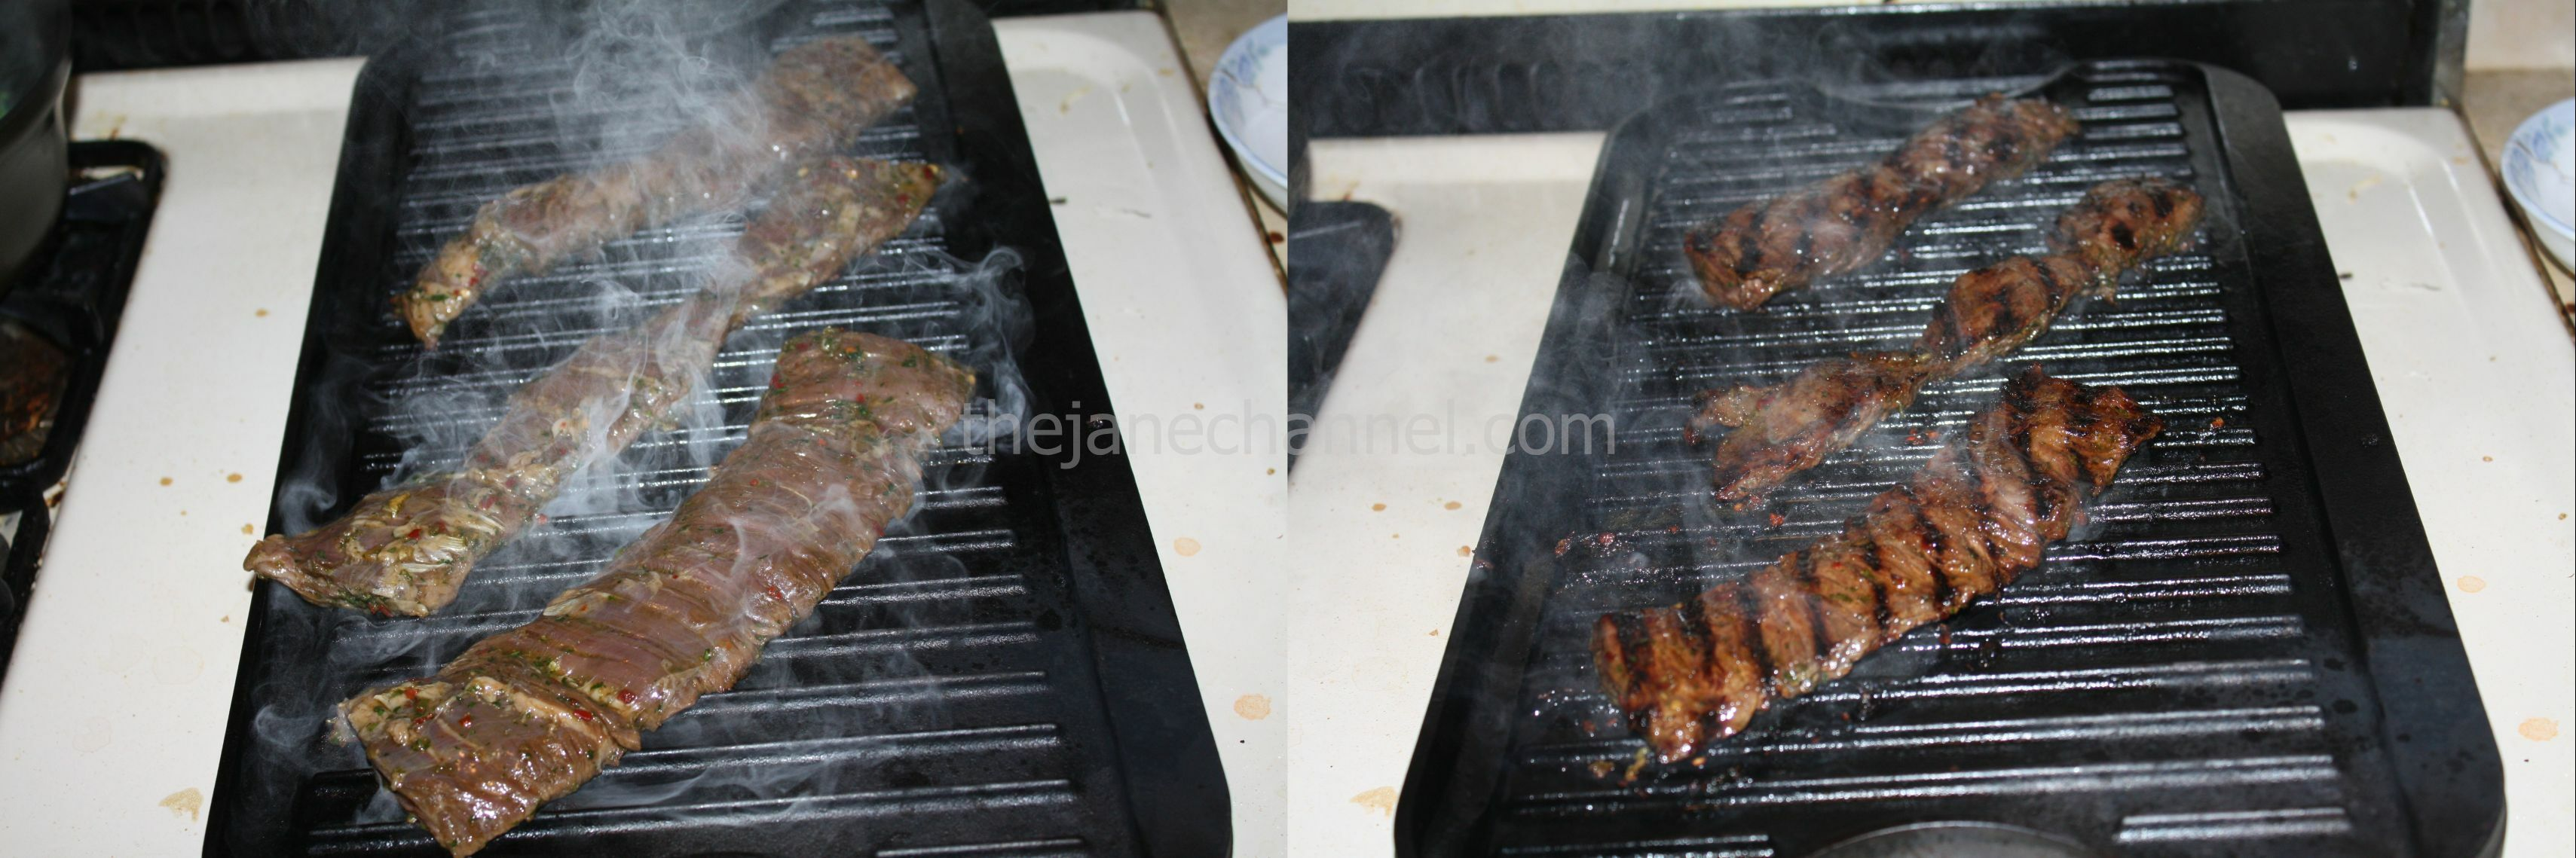 how to cook skirt steak on grill